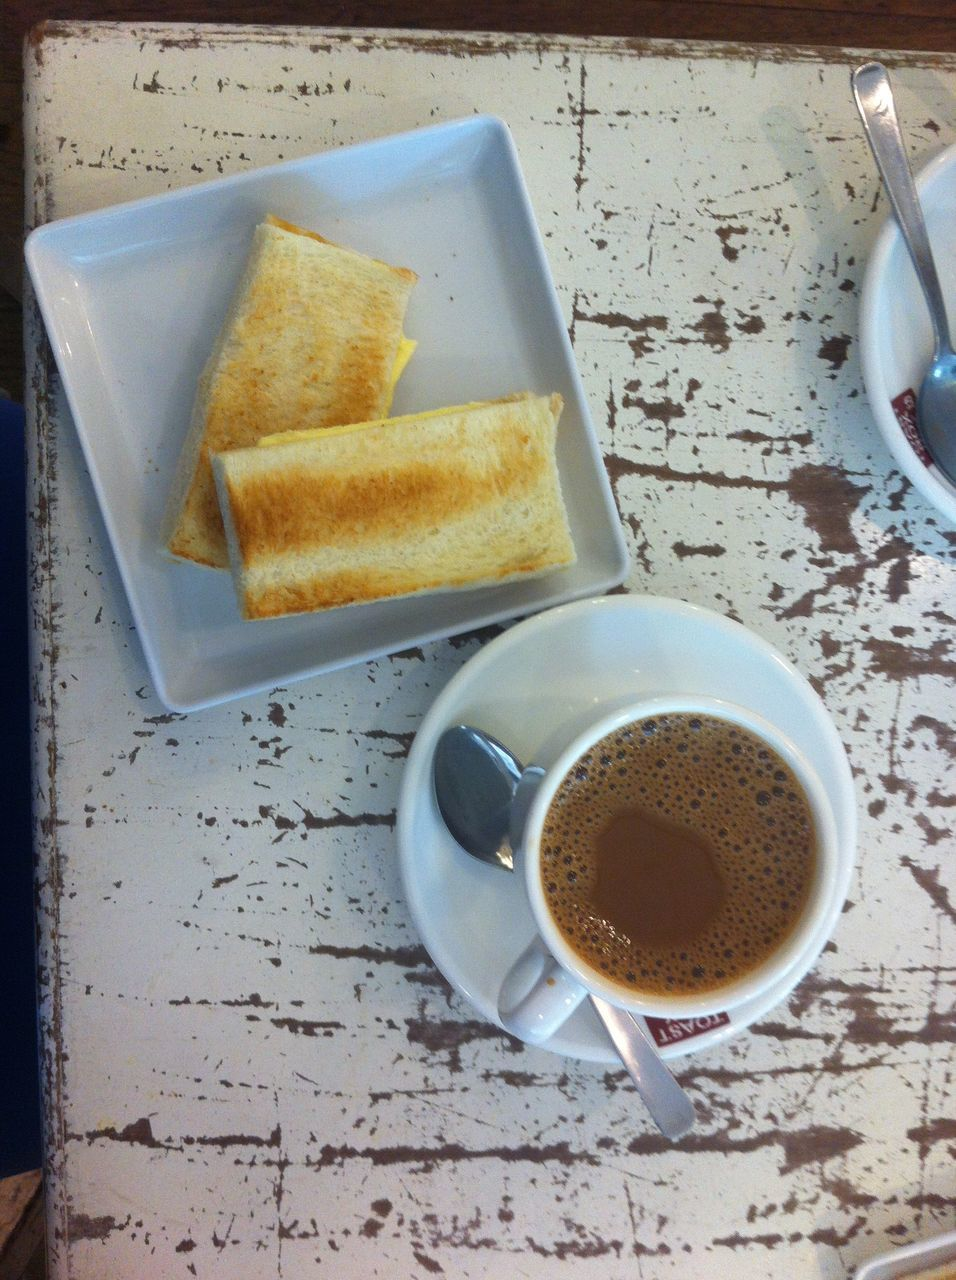 food and drink, coffee cup, coffee - drink, table, drink, freshness, refreshment, breakfast, food, indoors, bread, slice, no people, close-up, healthy eating, leftovers, ready-to-eat, day